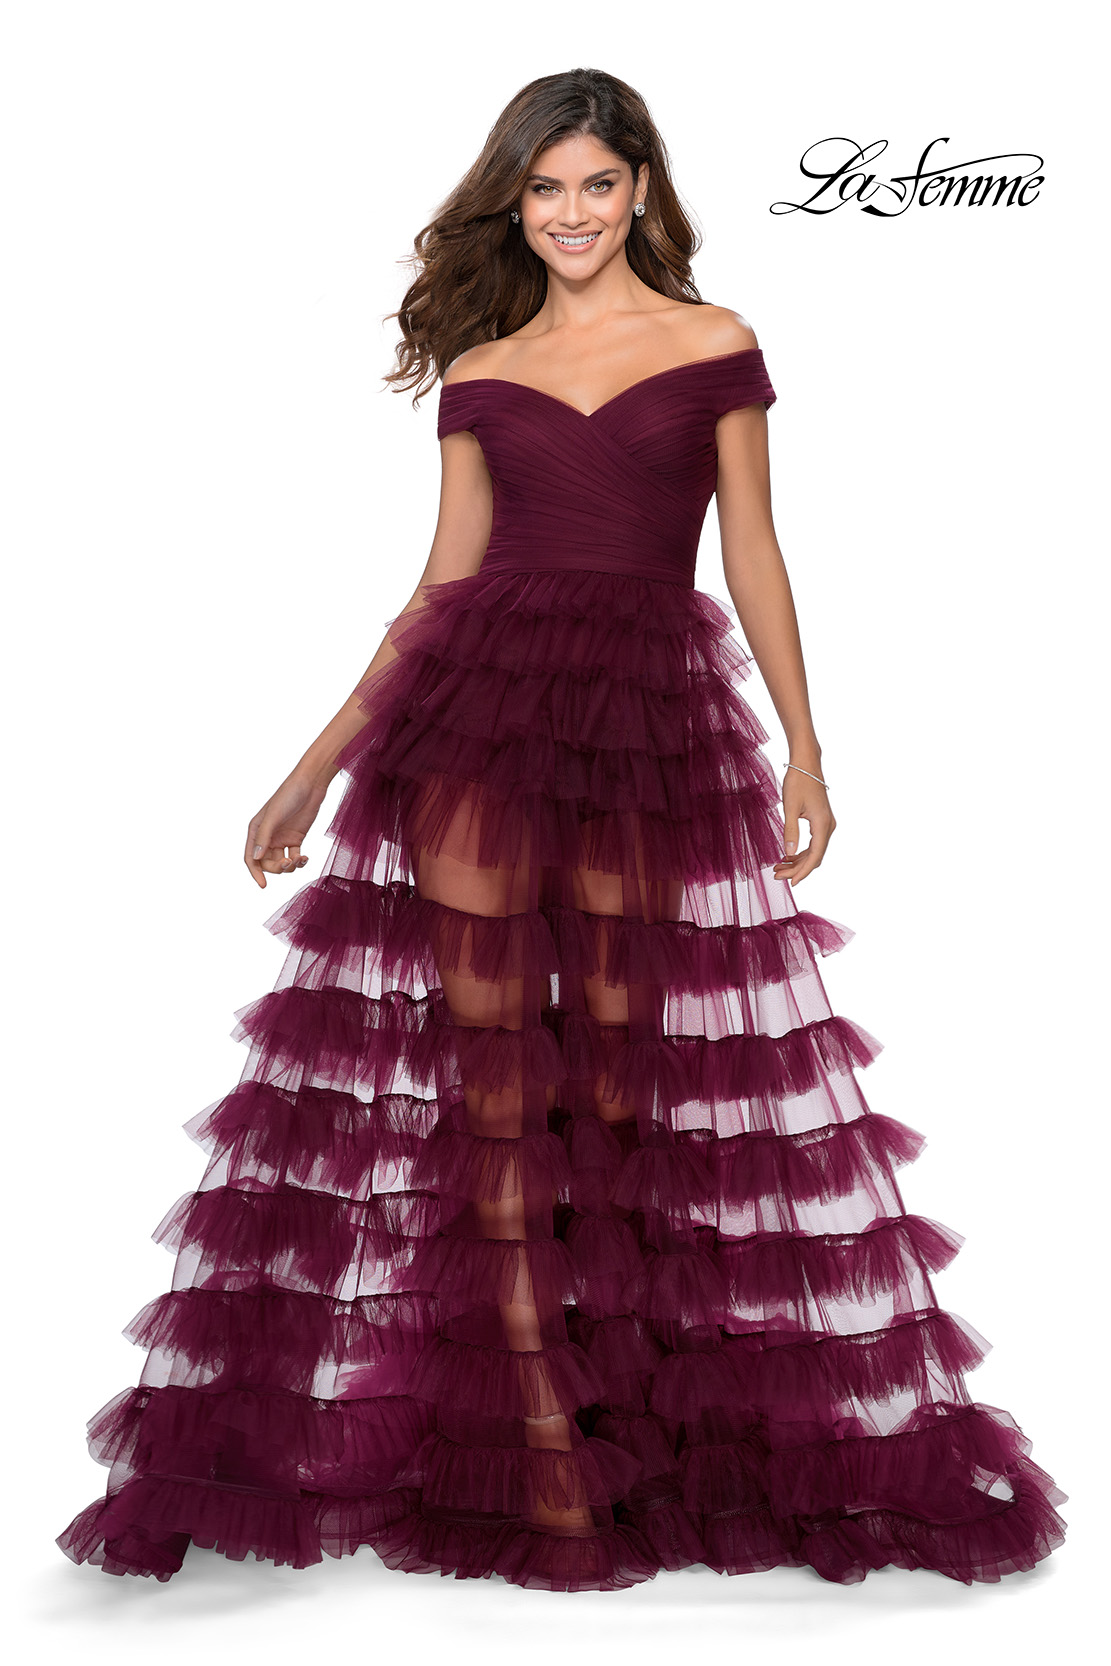 Ruffle Prom Dress with Shorts La Femme Style 28804